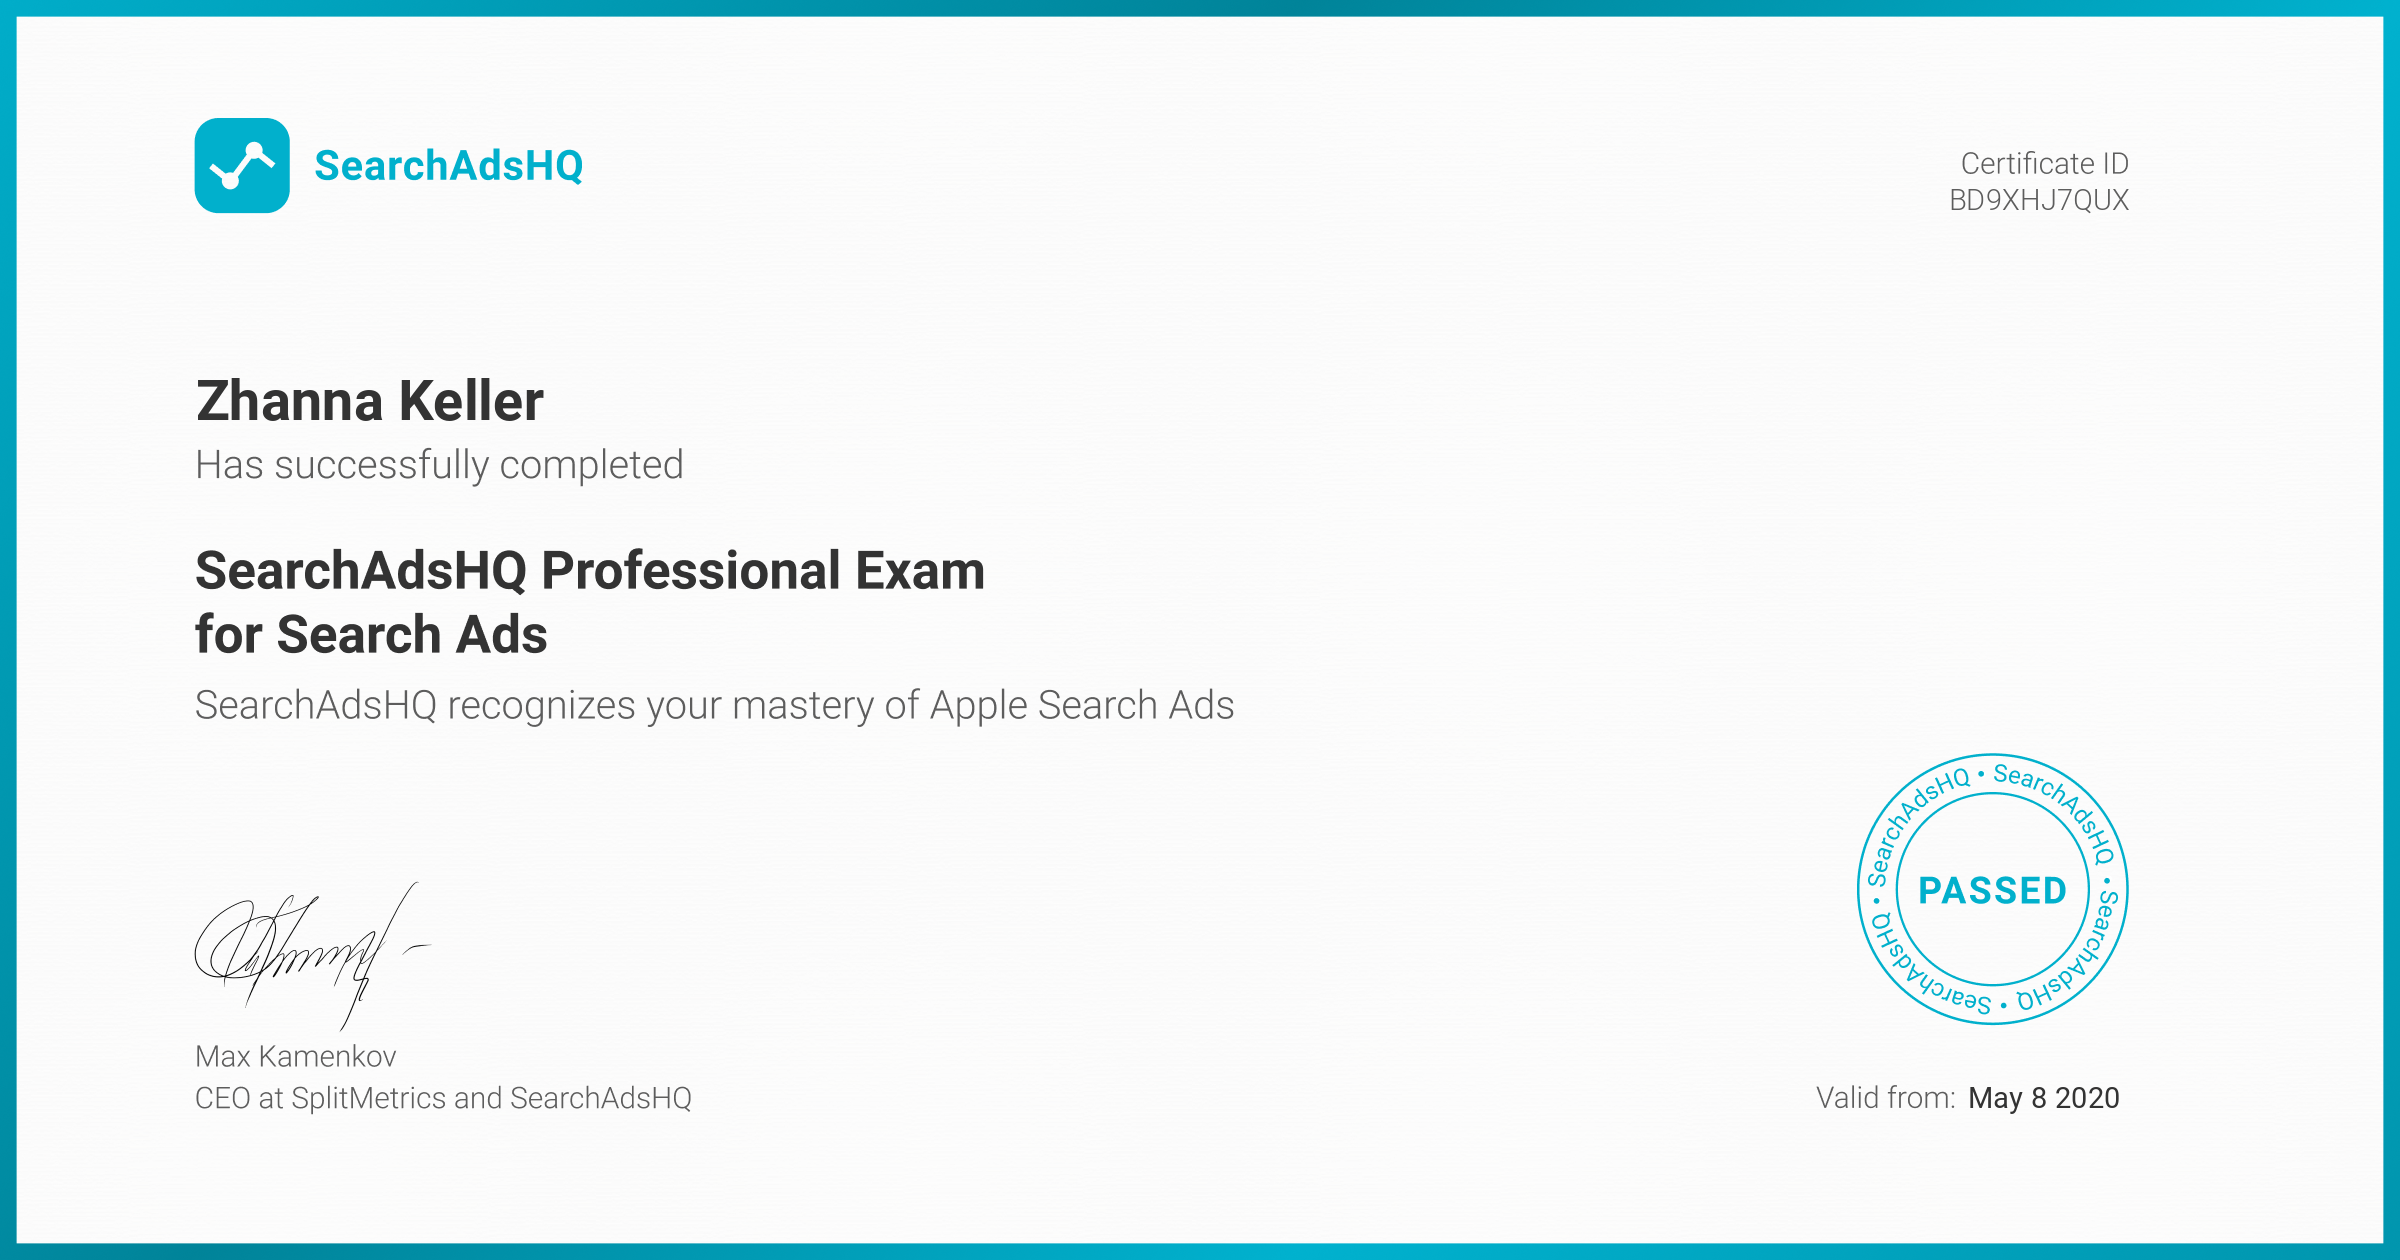 Certificate for Zhanna Keller | SearchAdsHQ Professional Exam for Search Ads